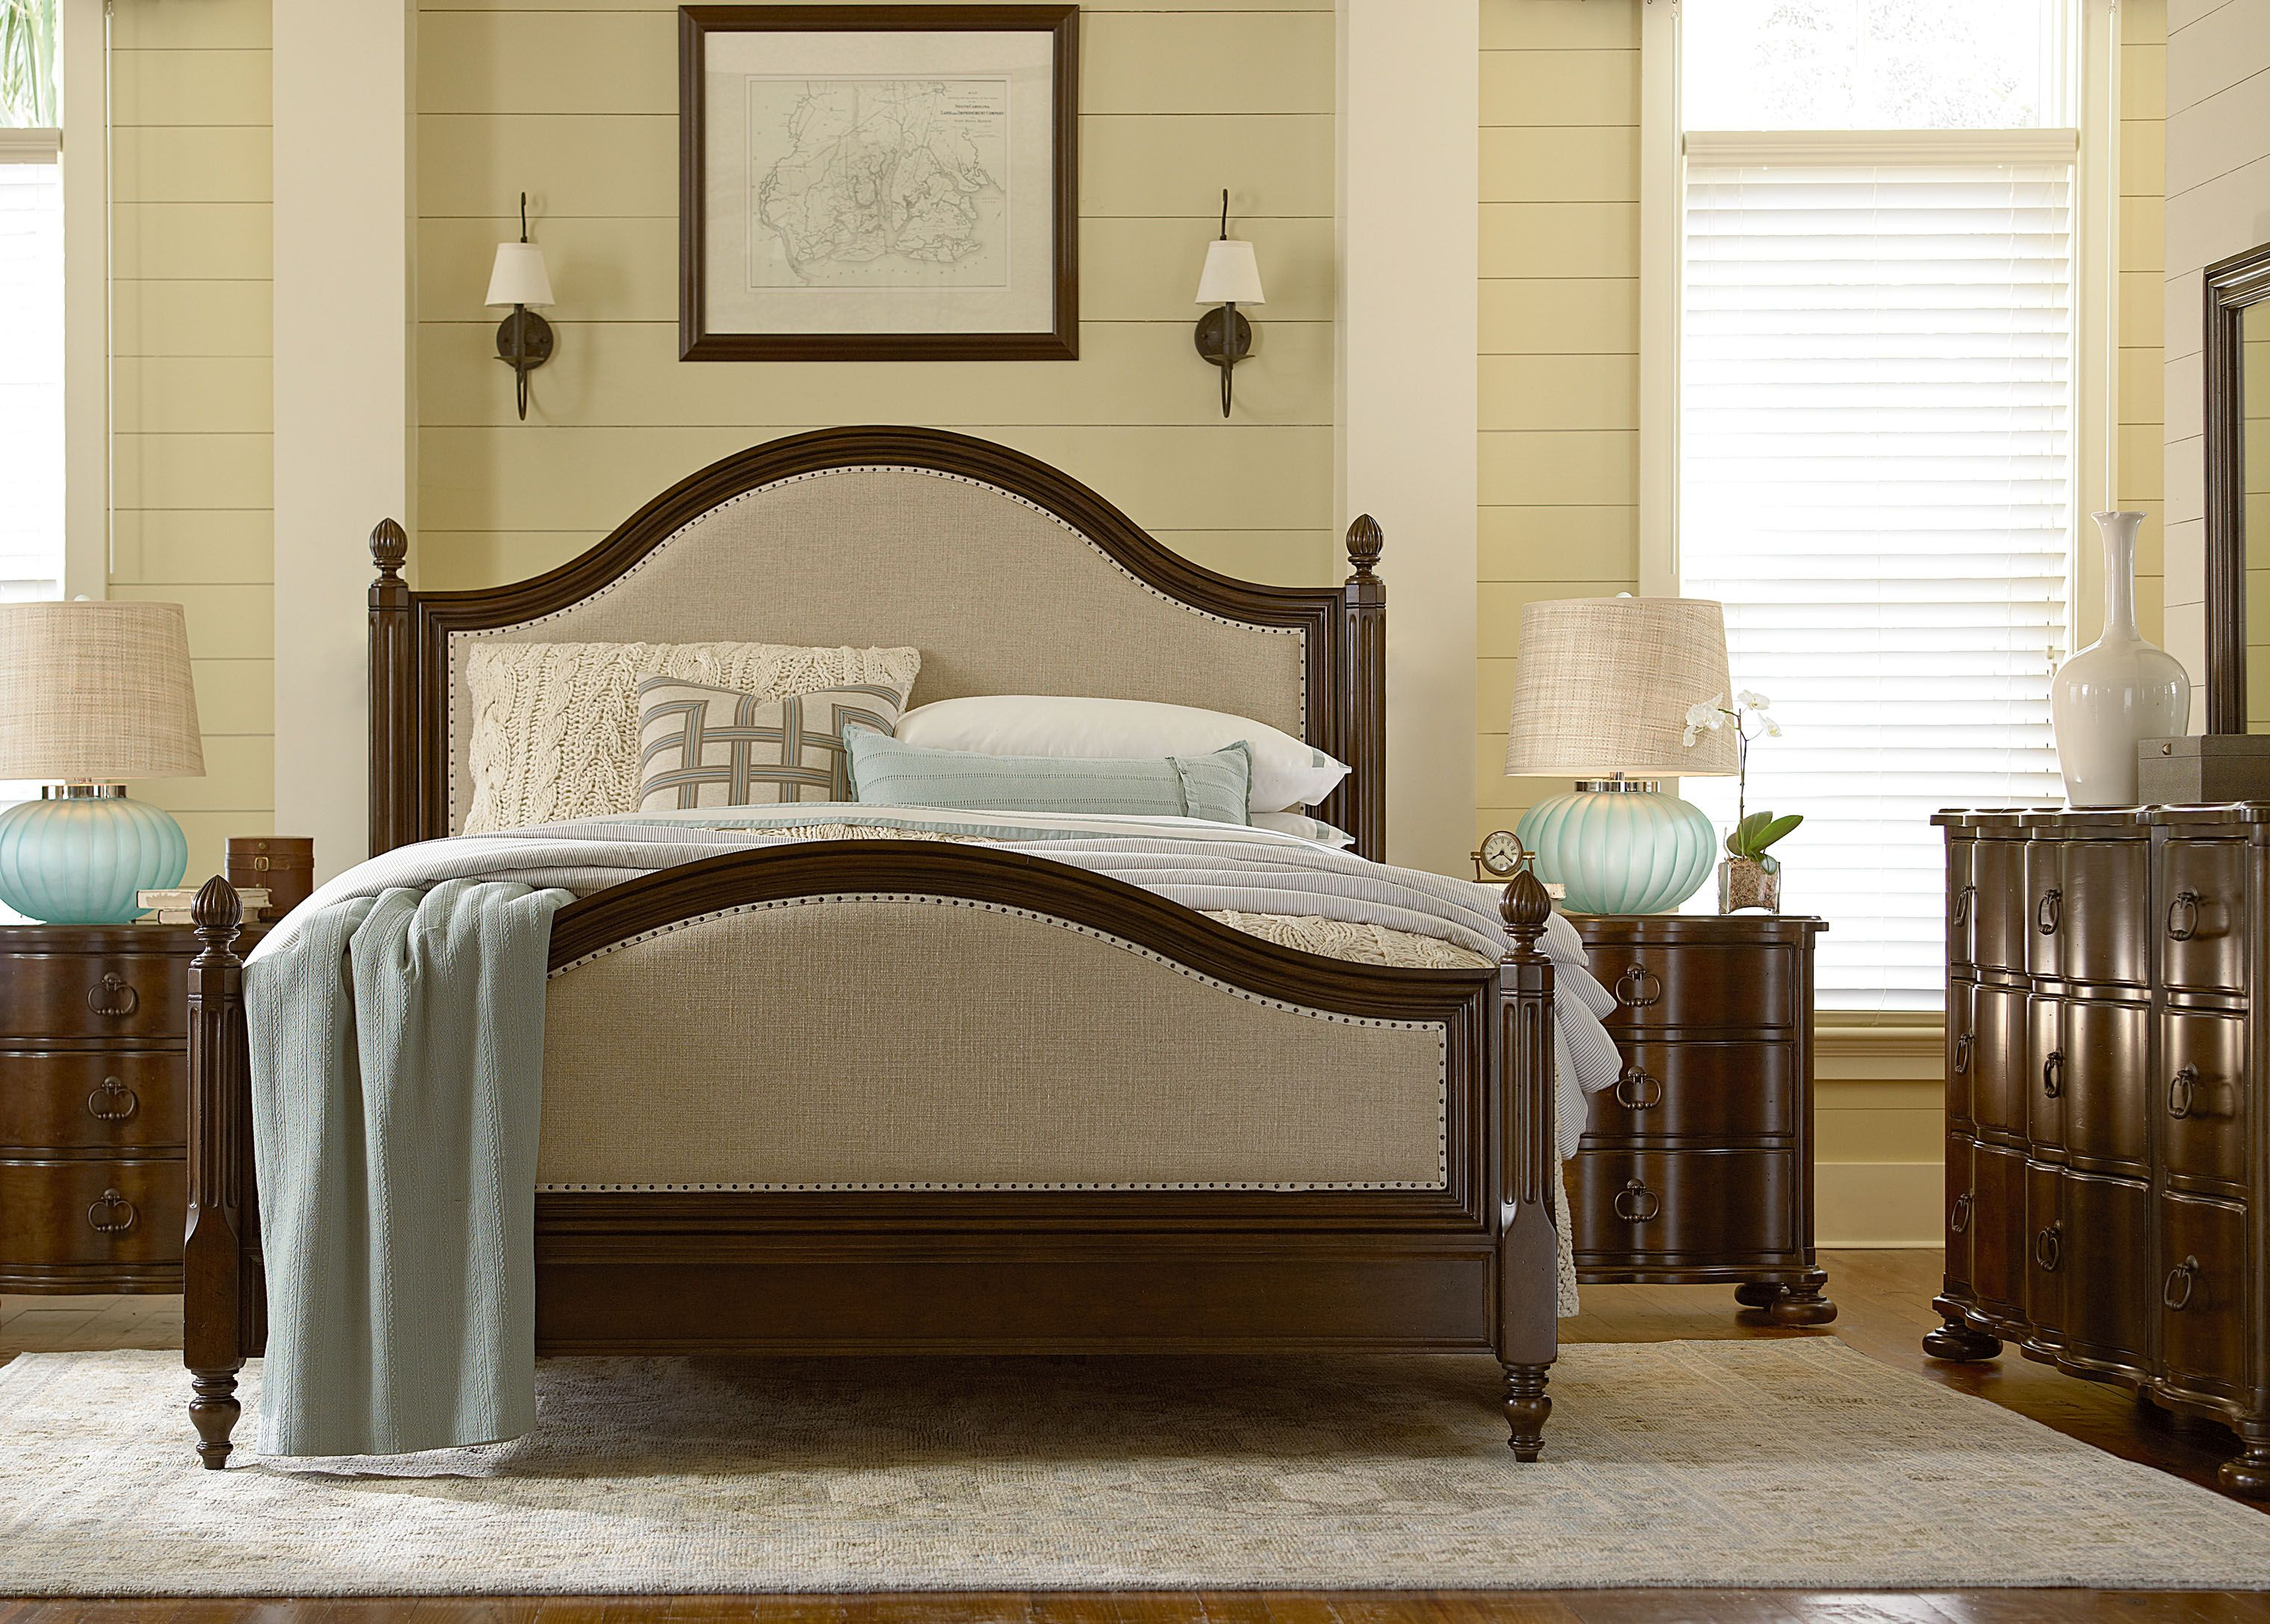 Lovely Lowest Prices On Discount Paula Deen River House   River Bank Bedroom Set  Universal Furniture. Buy Paula Deen River House   River Bank Bedroom Set  Universal ...